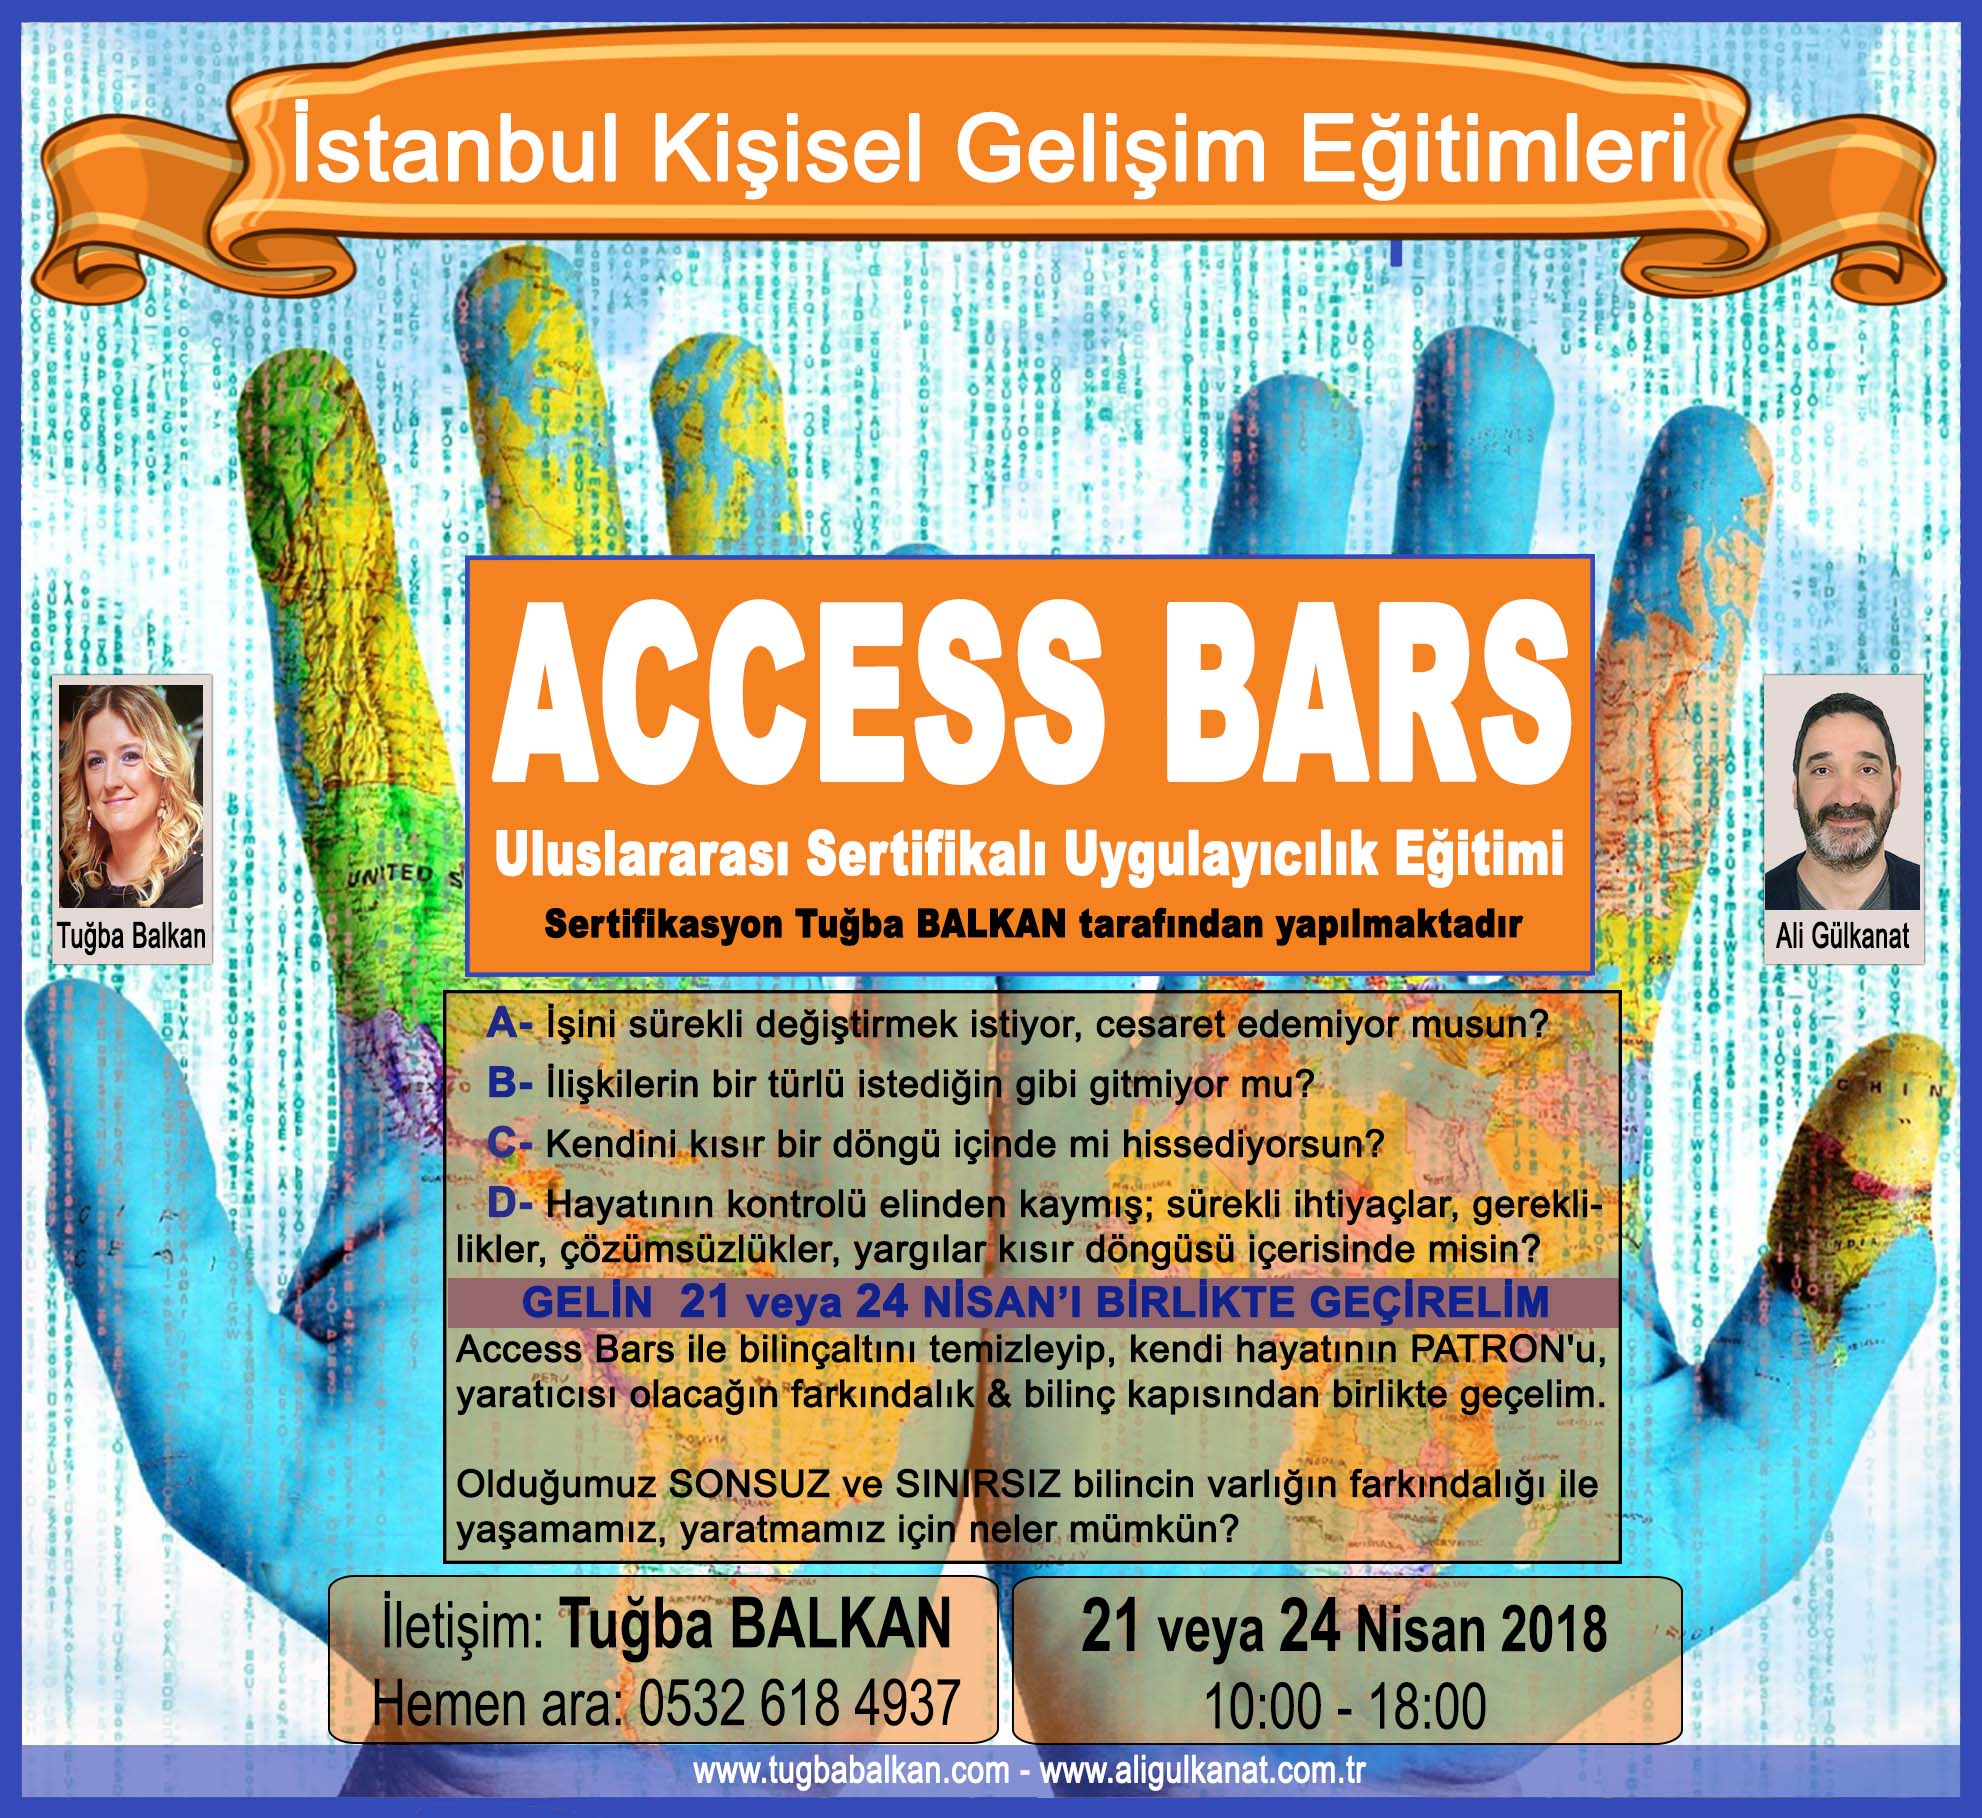 access-bars-tanitim-21-24-nisan-2018-1